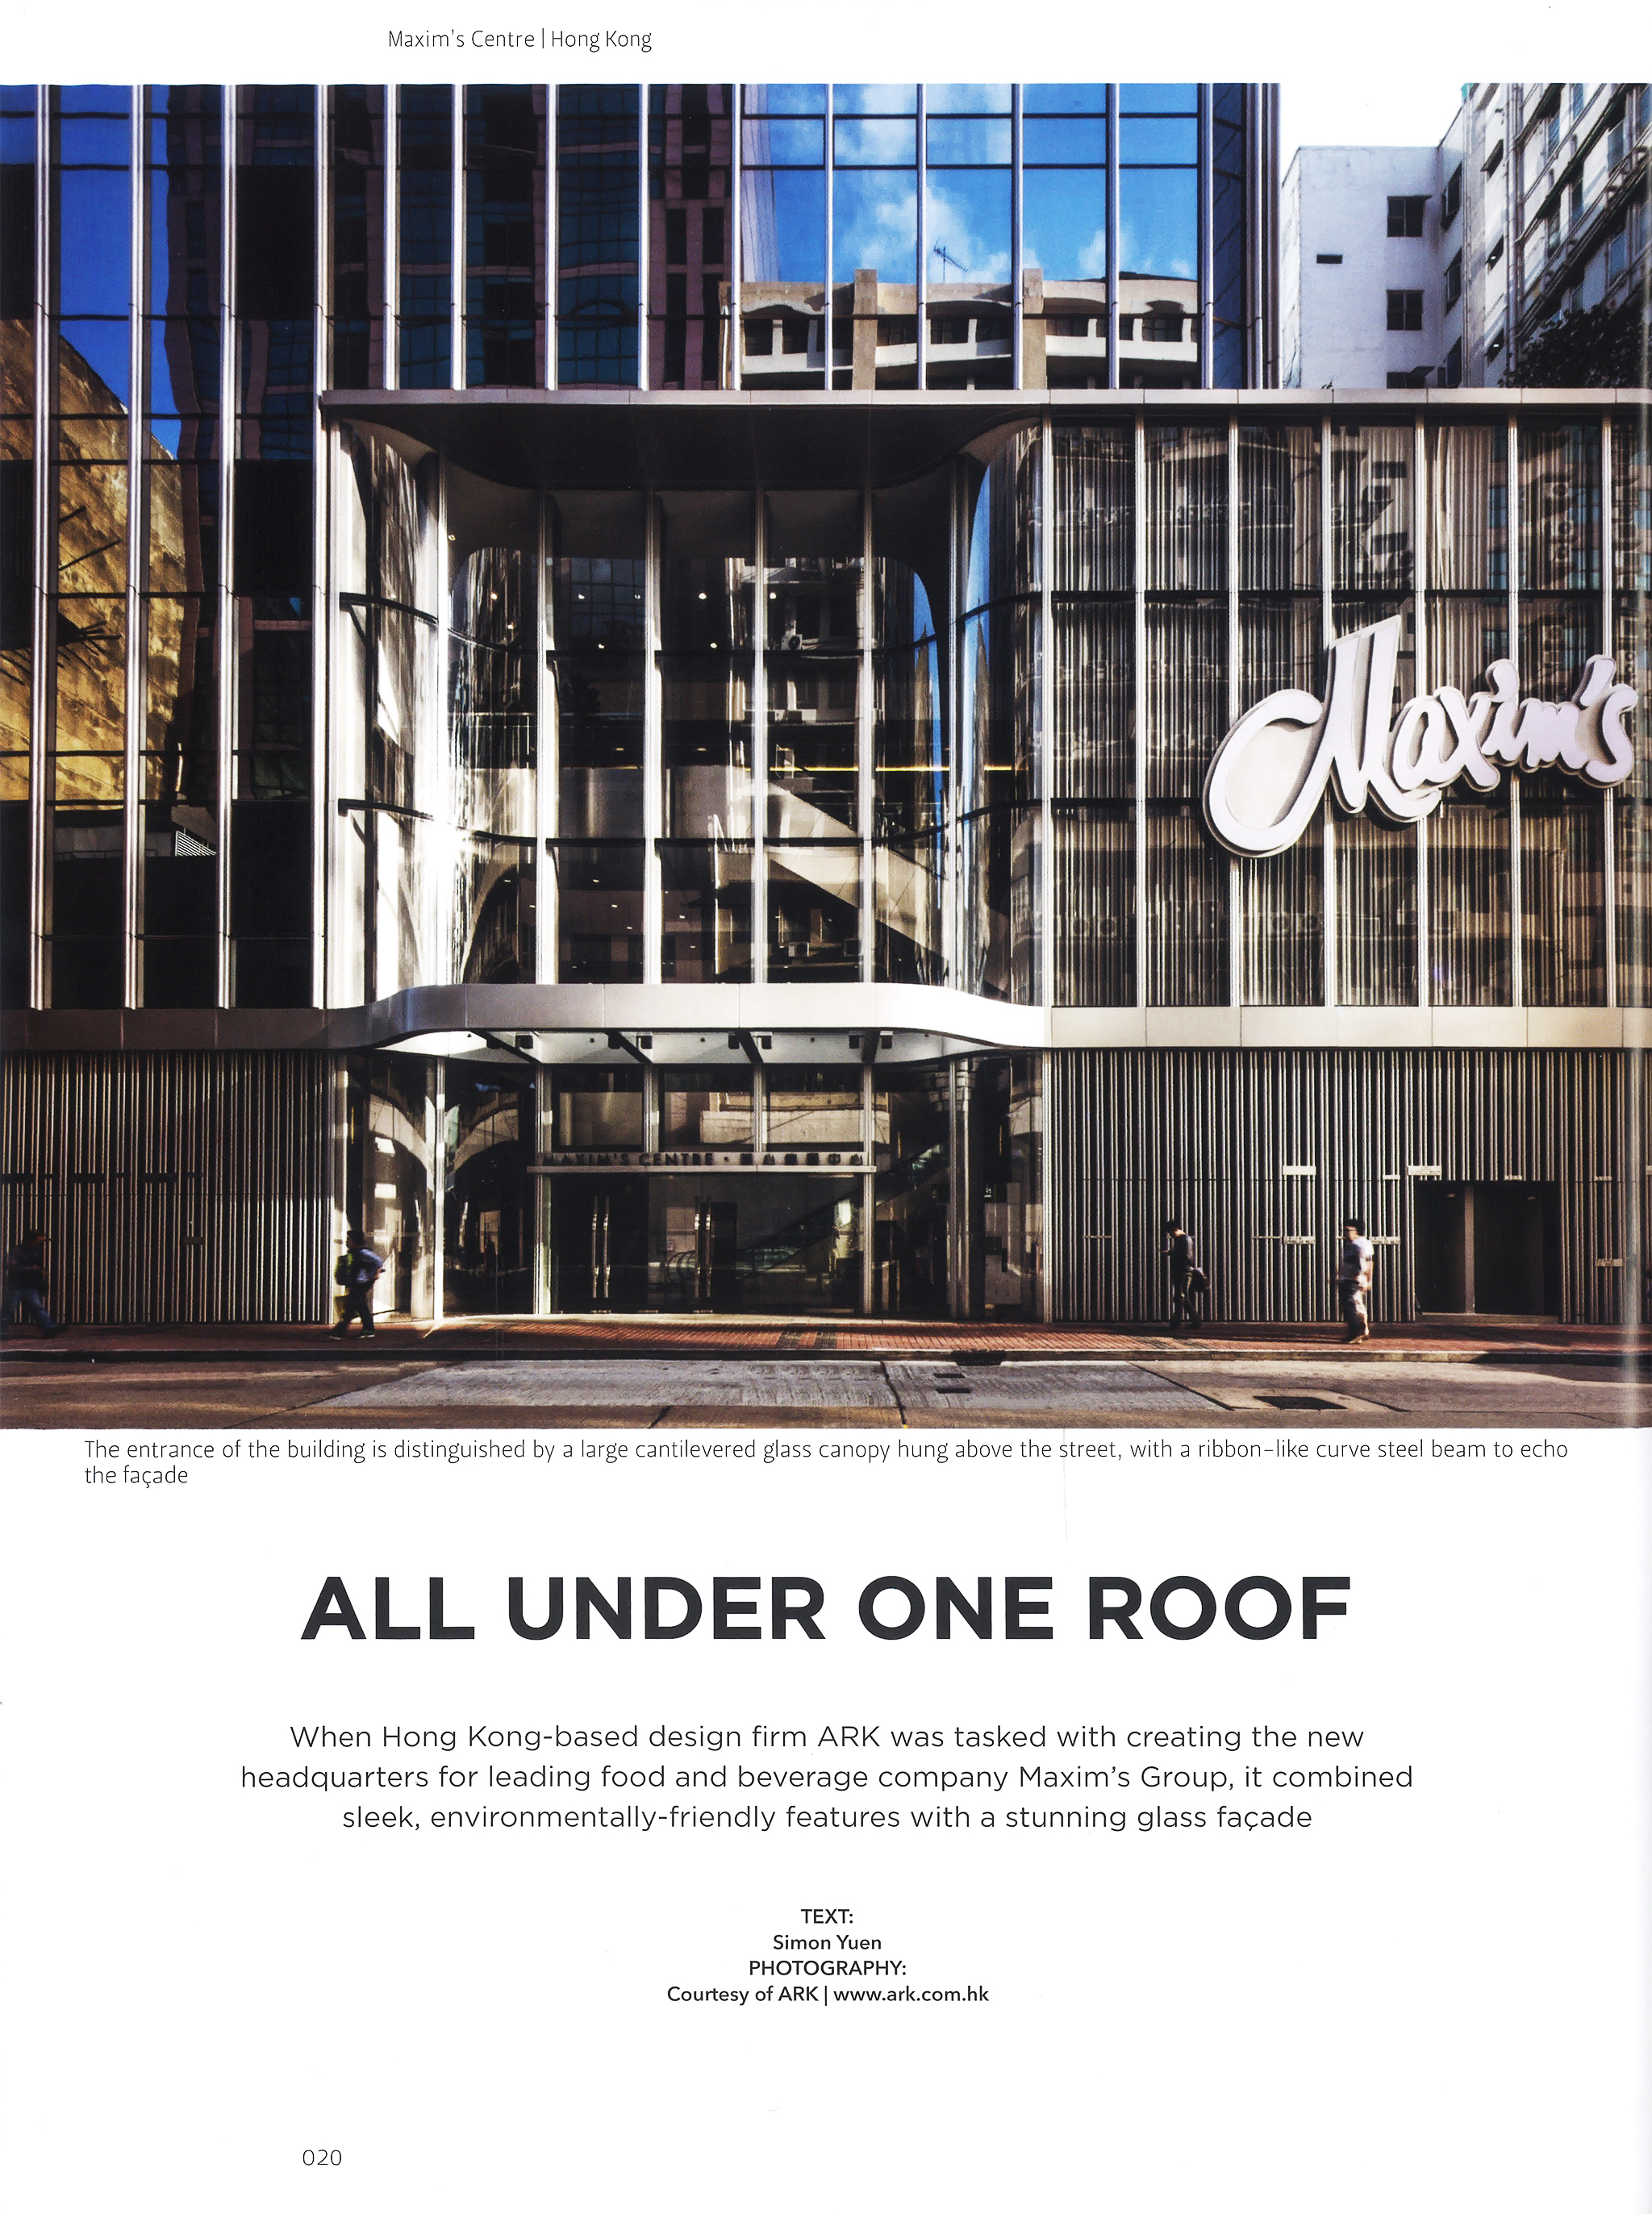 Perspective, 'All Under One Roof'